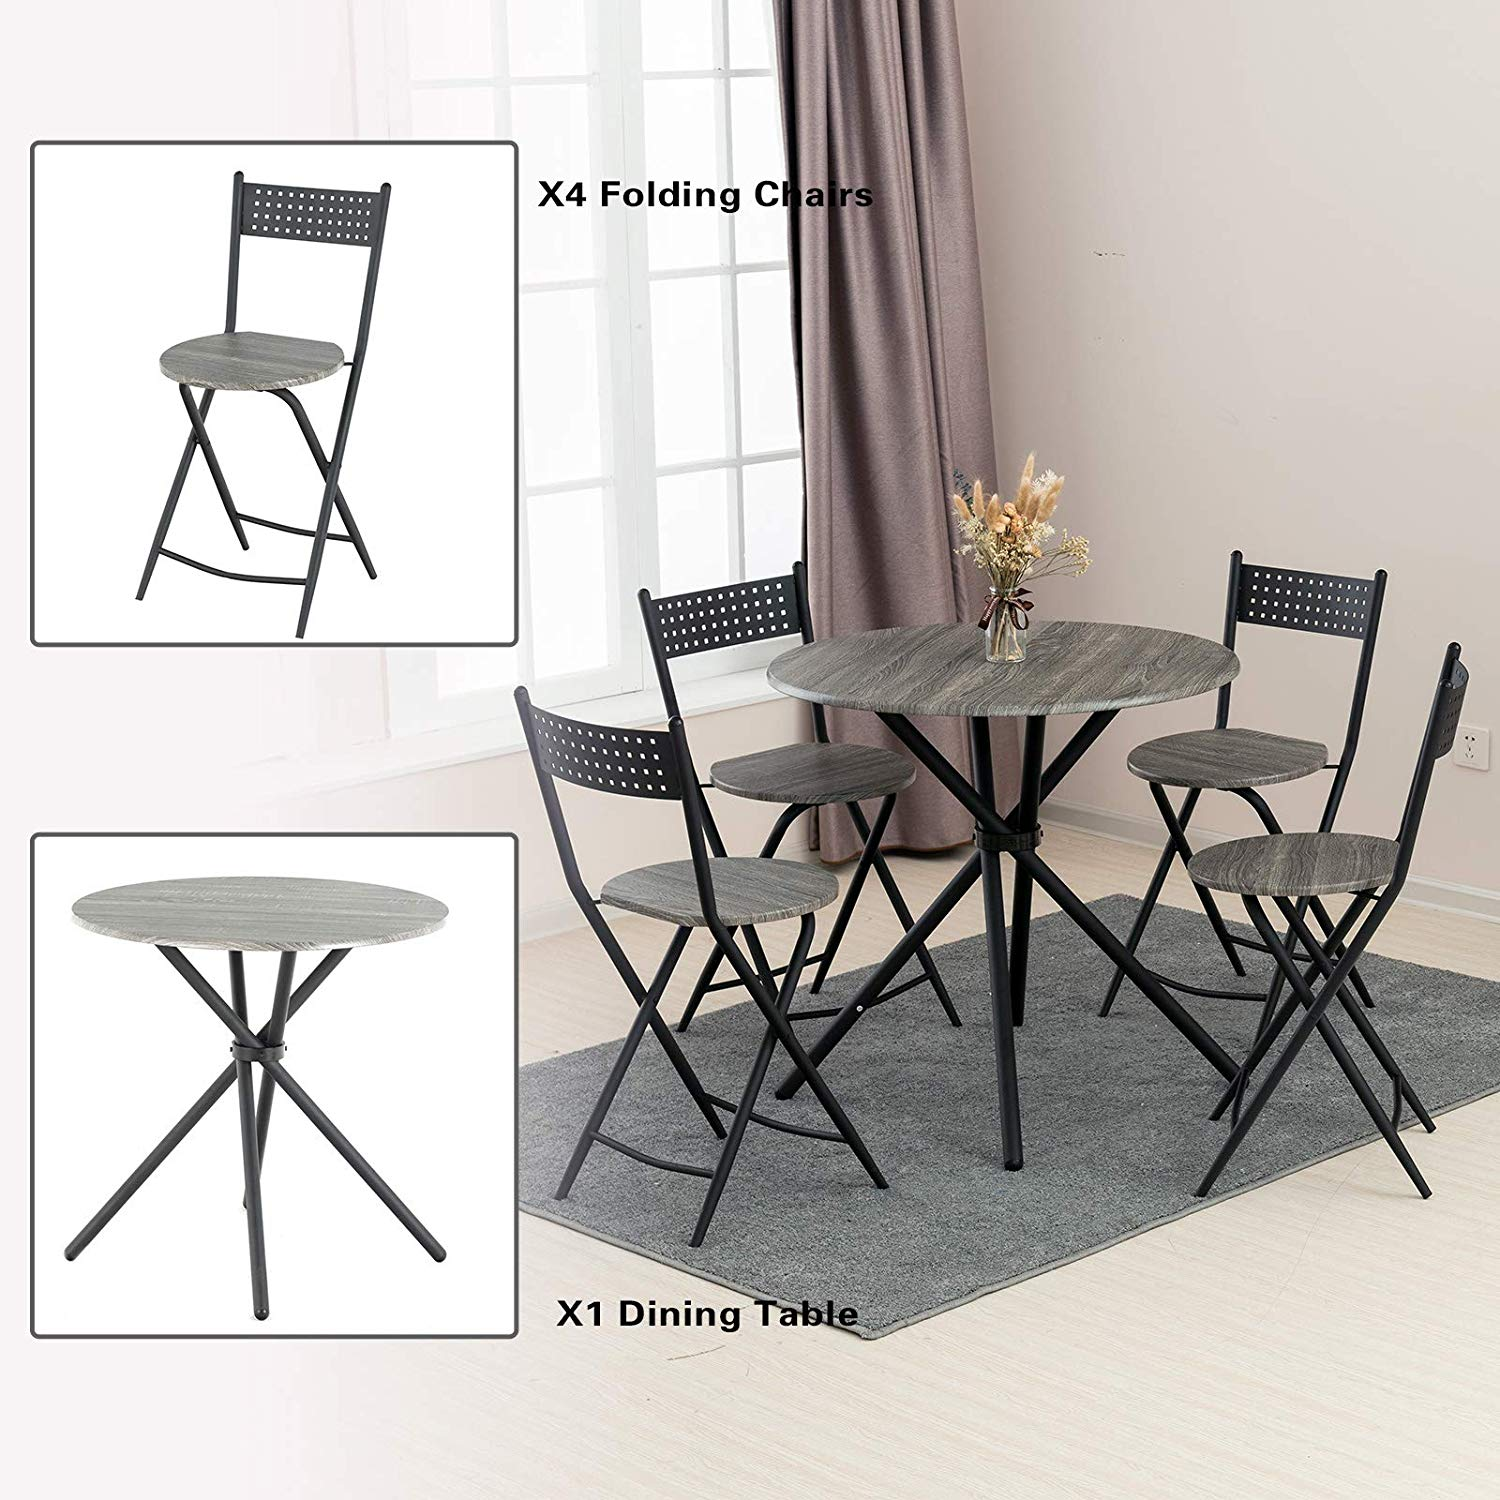 Mid Century Vintage Round Foldable Coffee Table And Chairs With Metal Frame For Kitchen Patio Dining Room Mecor 3 Pcs Foldable Dining Table And Chairs Set Talkingbread Co Il